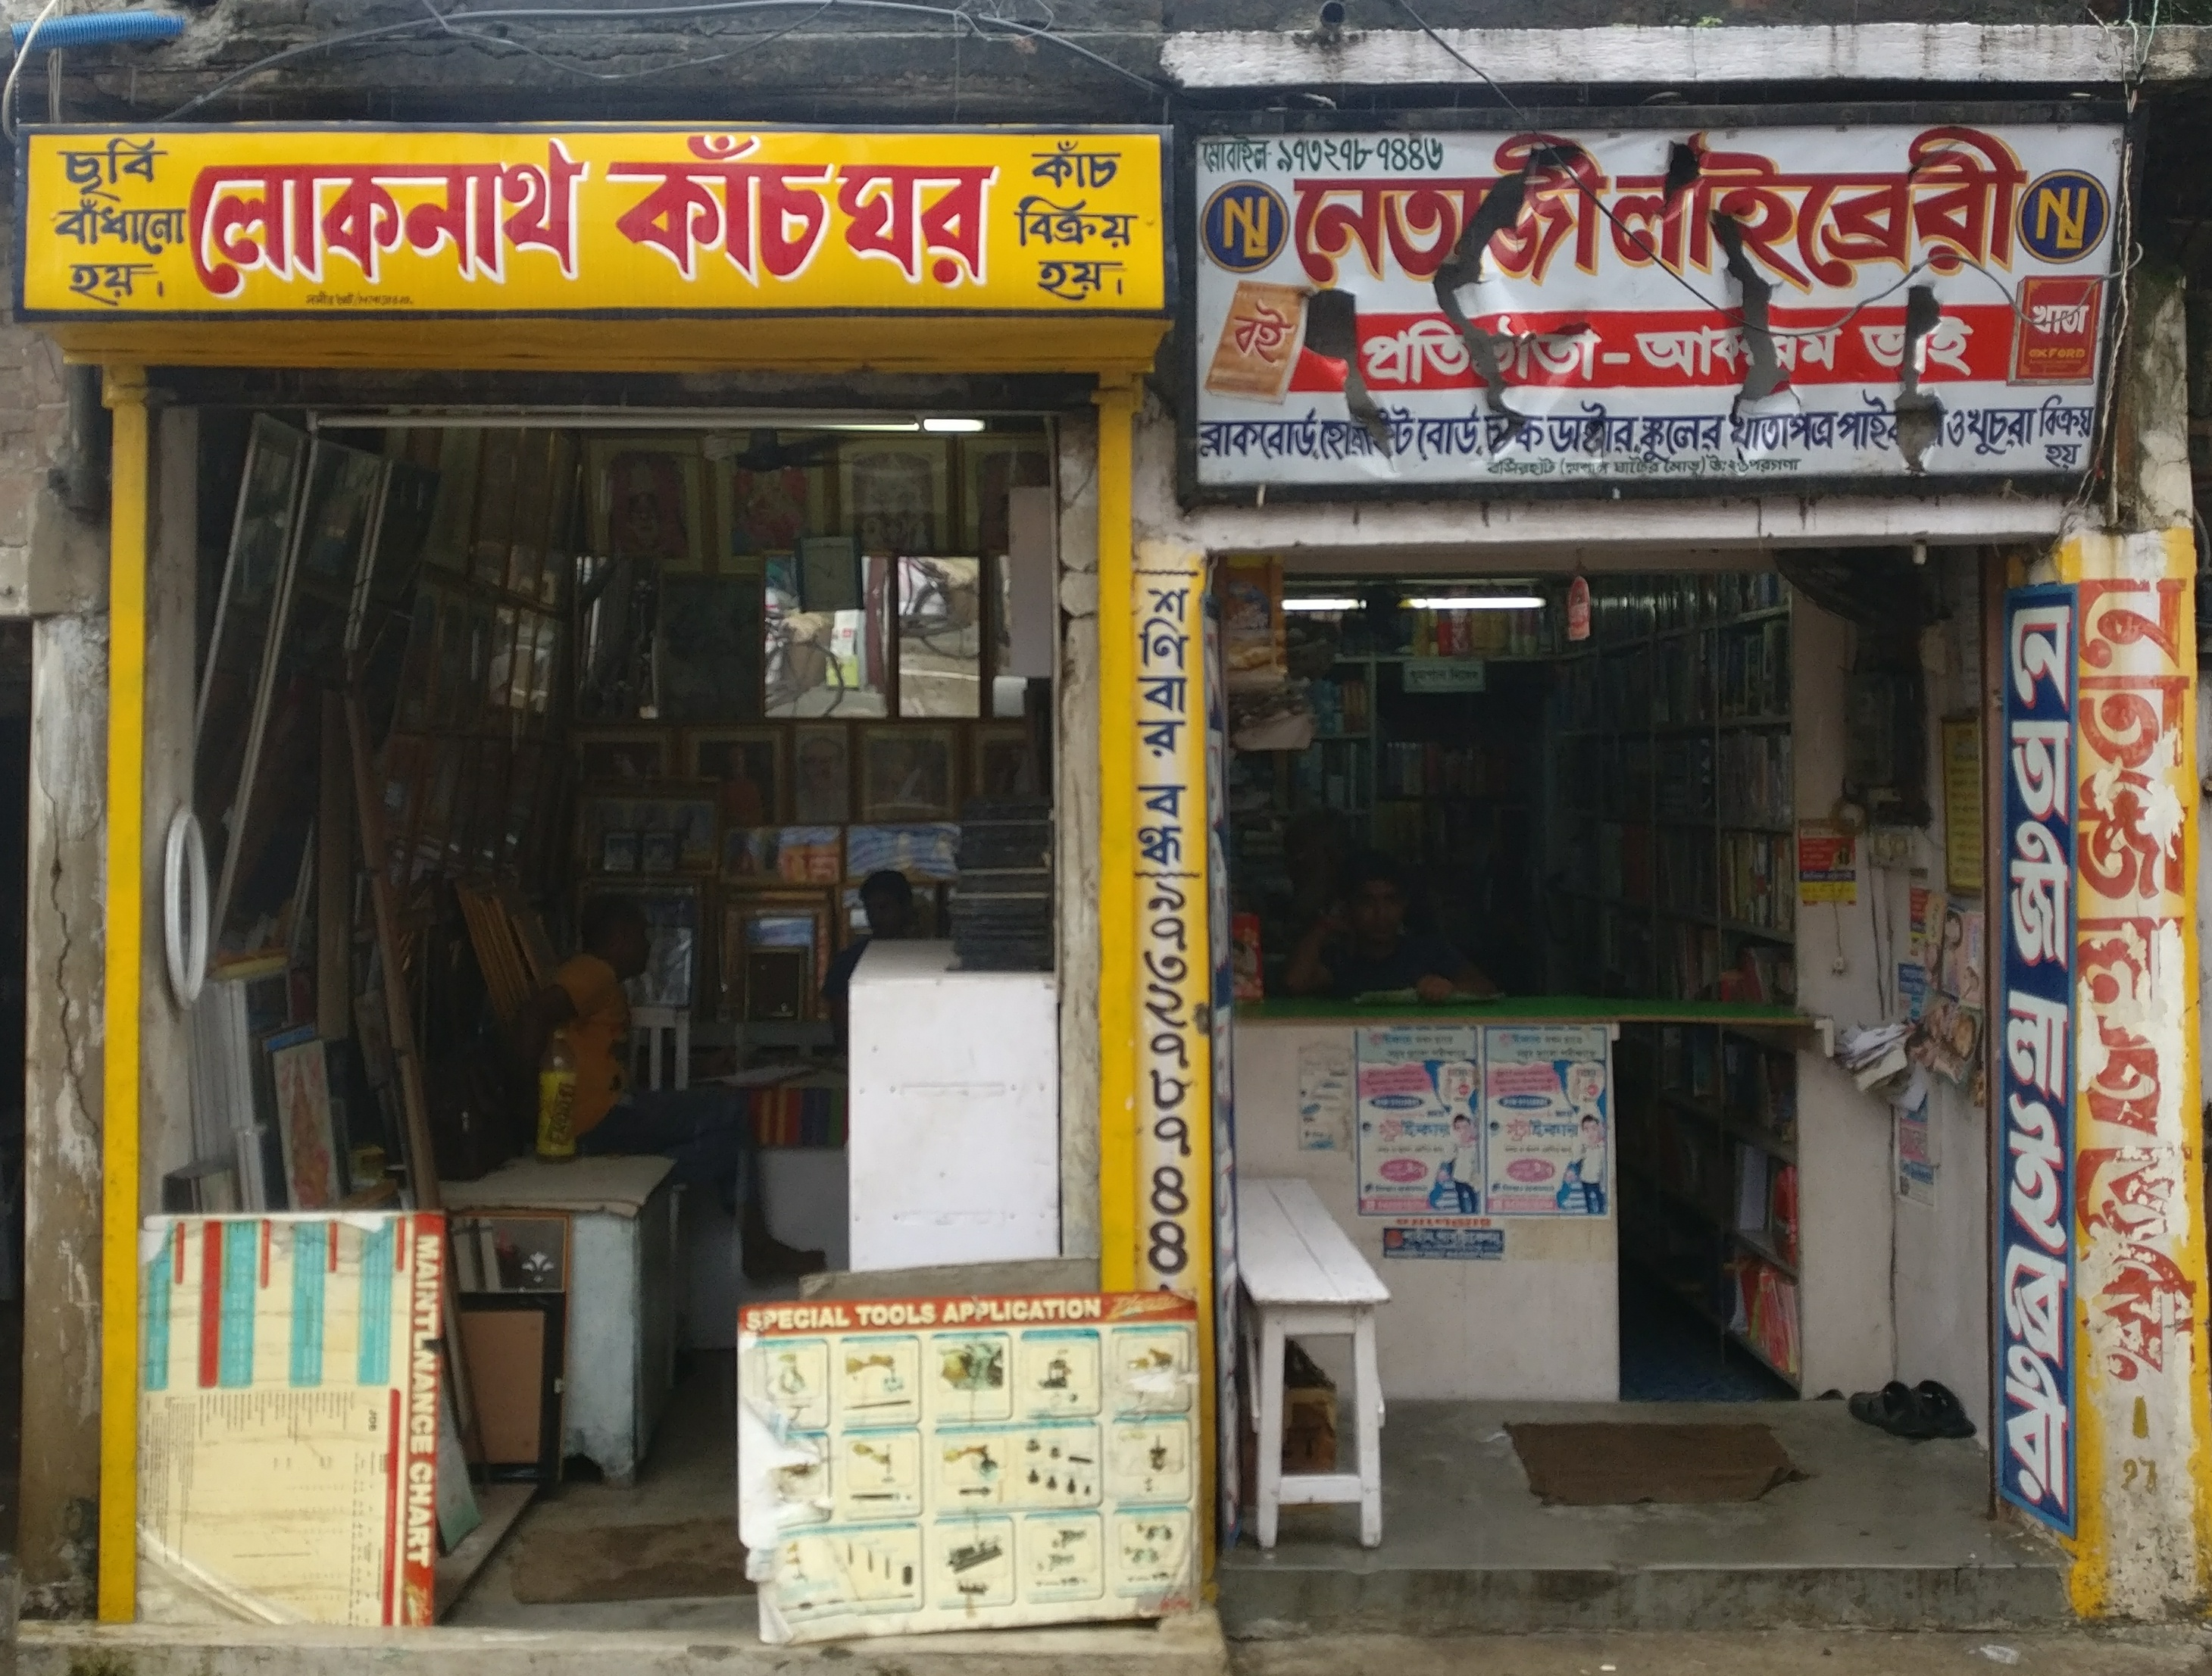 Across Basirhat, shops were identified and targetting according to the religion of their owner, pointing to the local nature of the riot. This photo is from the Shoshan Ghat neighbourhood. Photo credit: Shoaib Daniyal